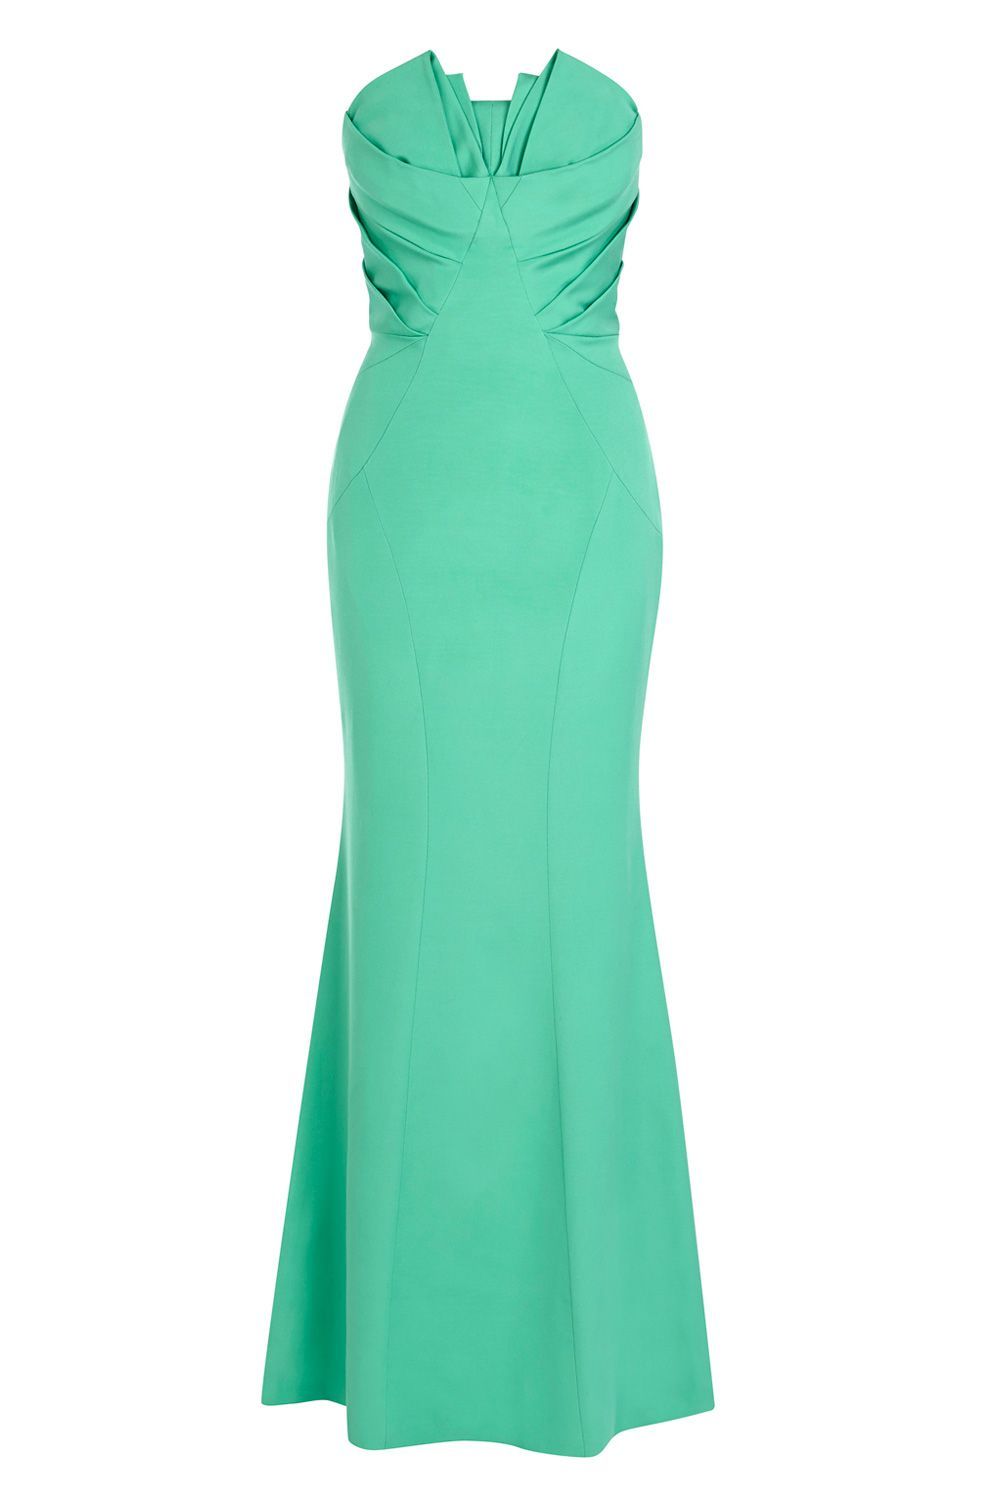 Prom Dresses & Outfits | Greens ROXIE MAXI DRESS | Coast Stores ...